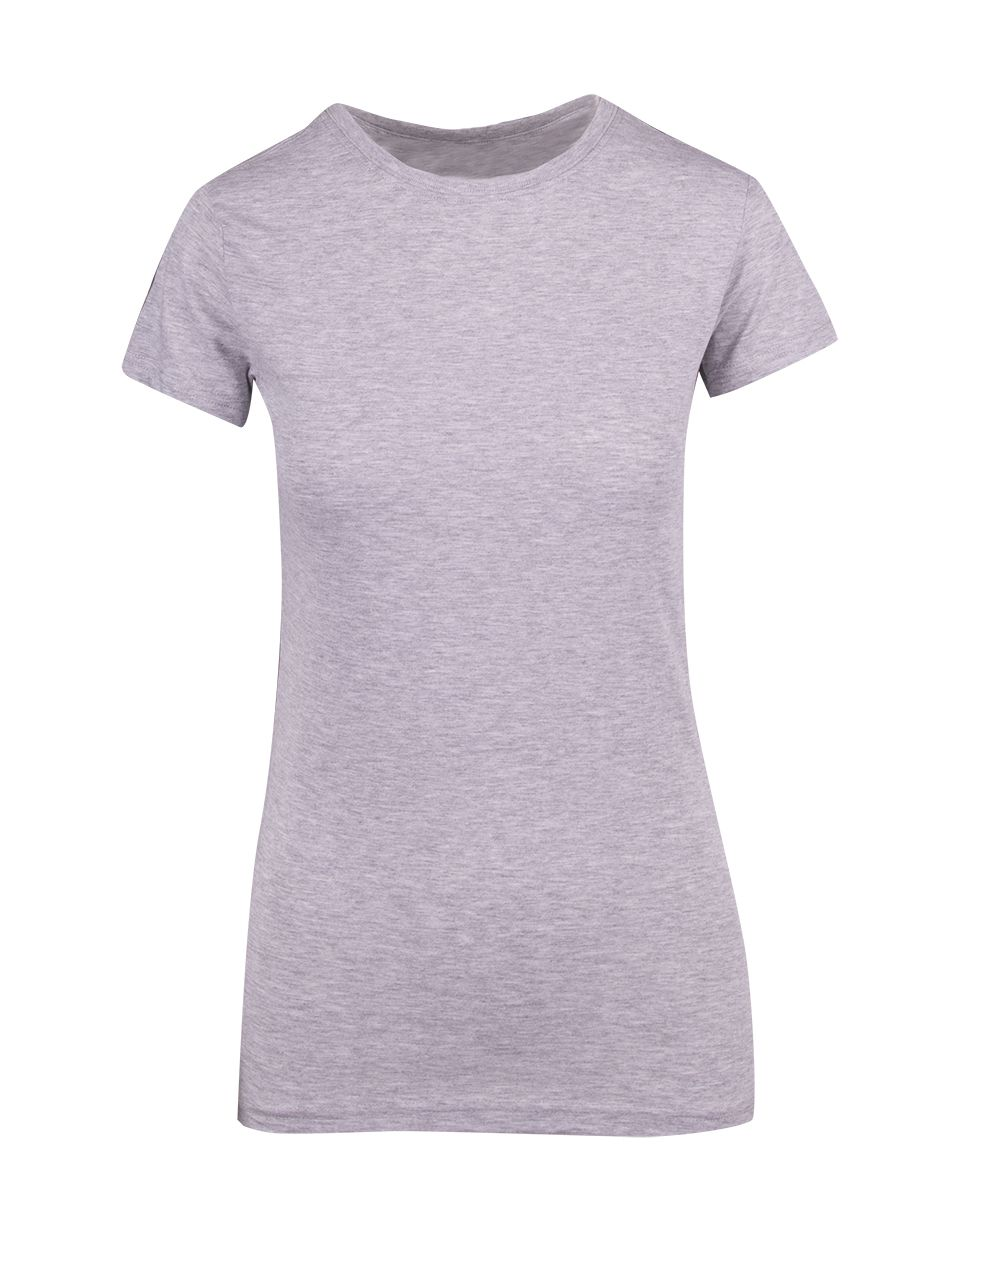 Ladies Modern Fit Tee T201LD - Tapered Fit   Crew Neck   Mid-Weight   185 gsm   100% Combed Cotton   15 Colours